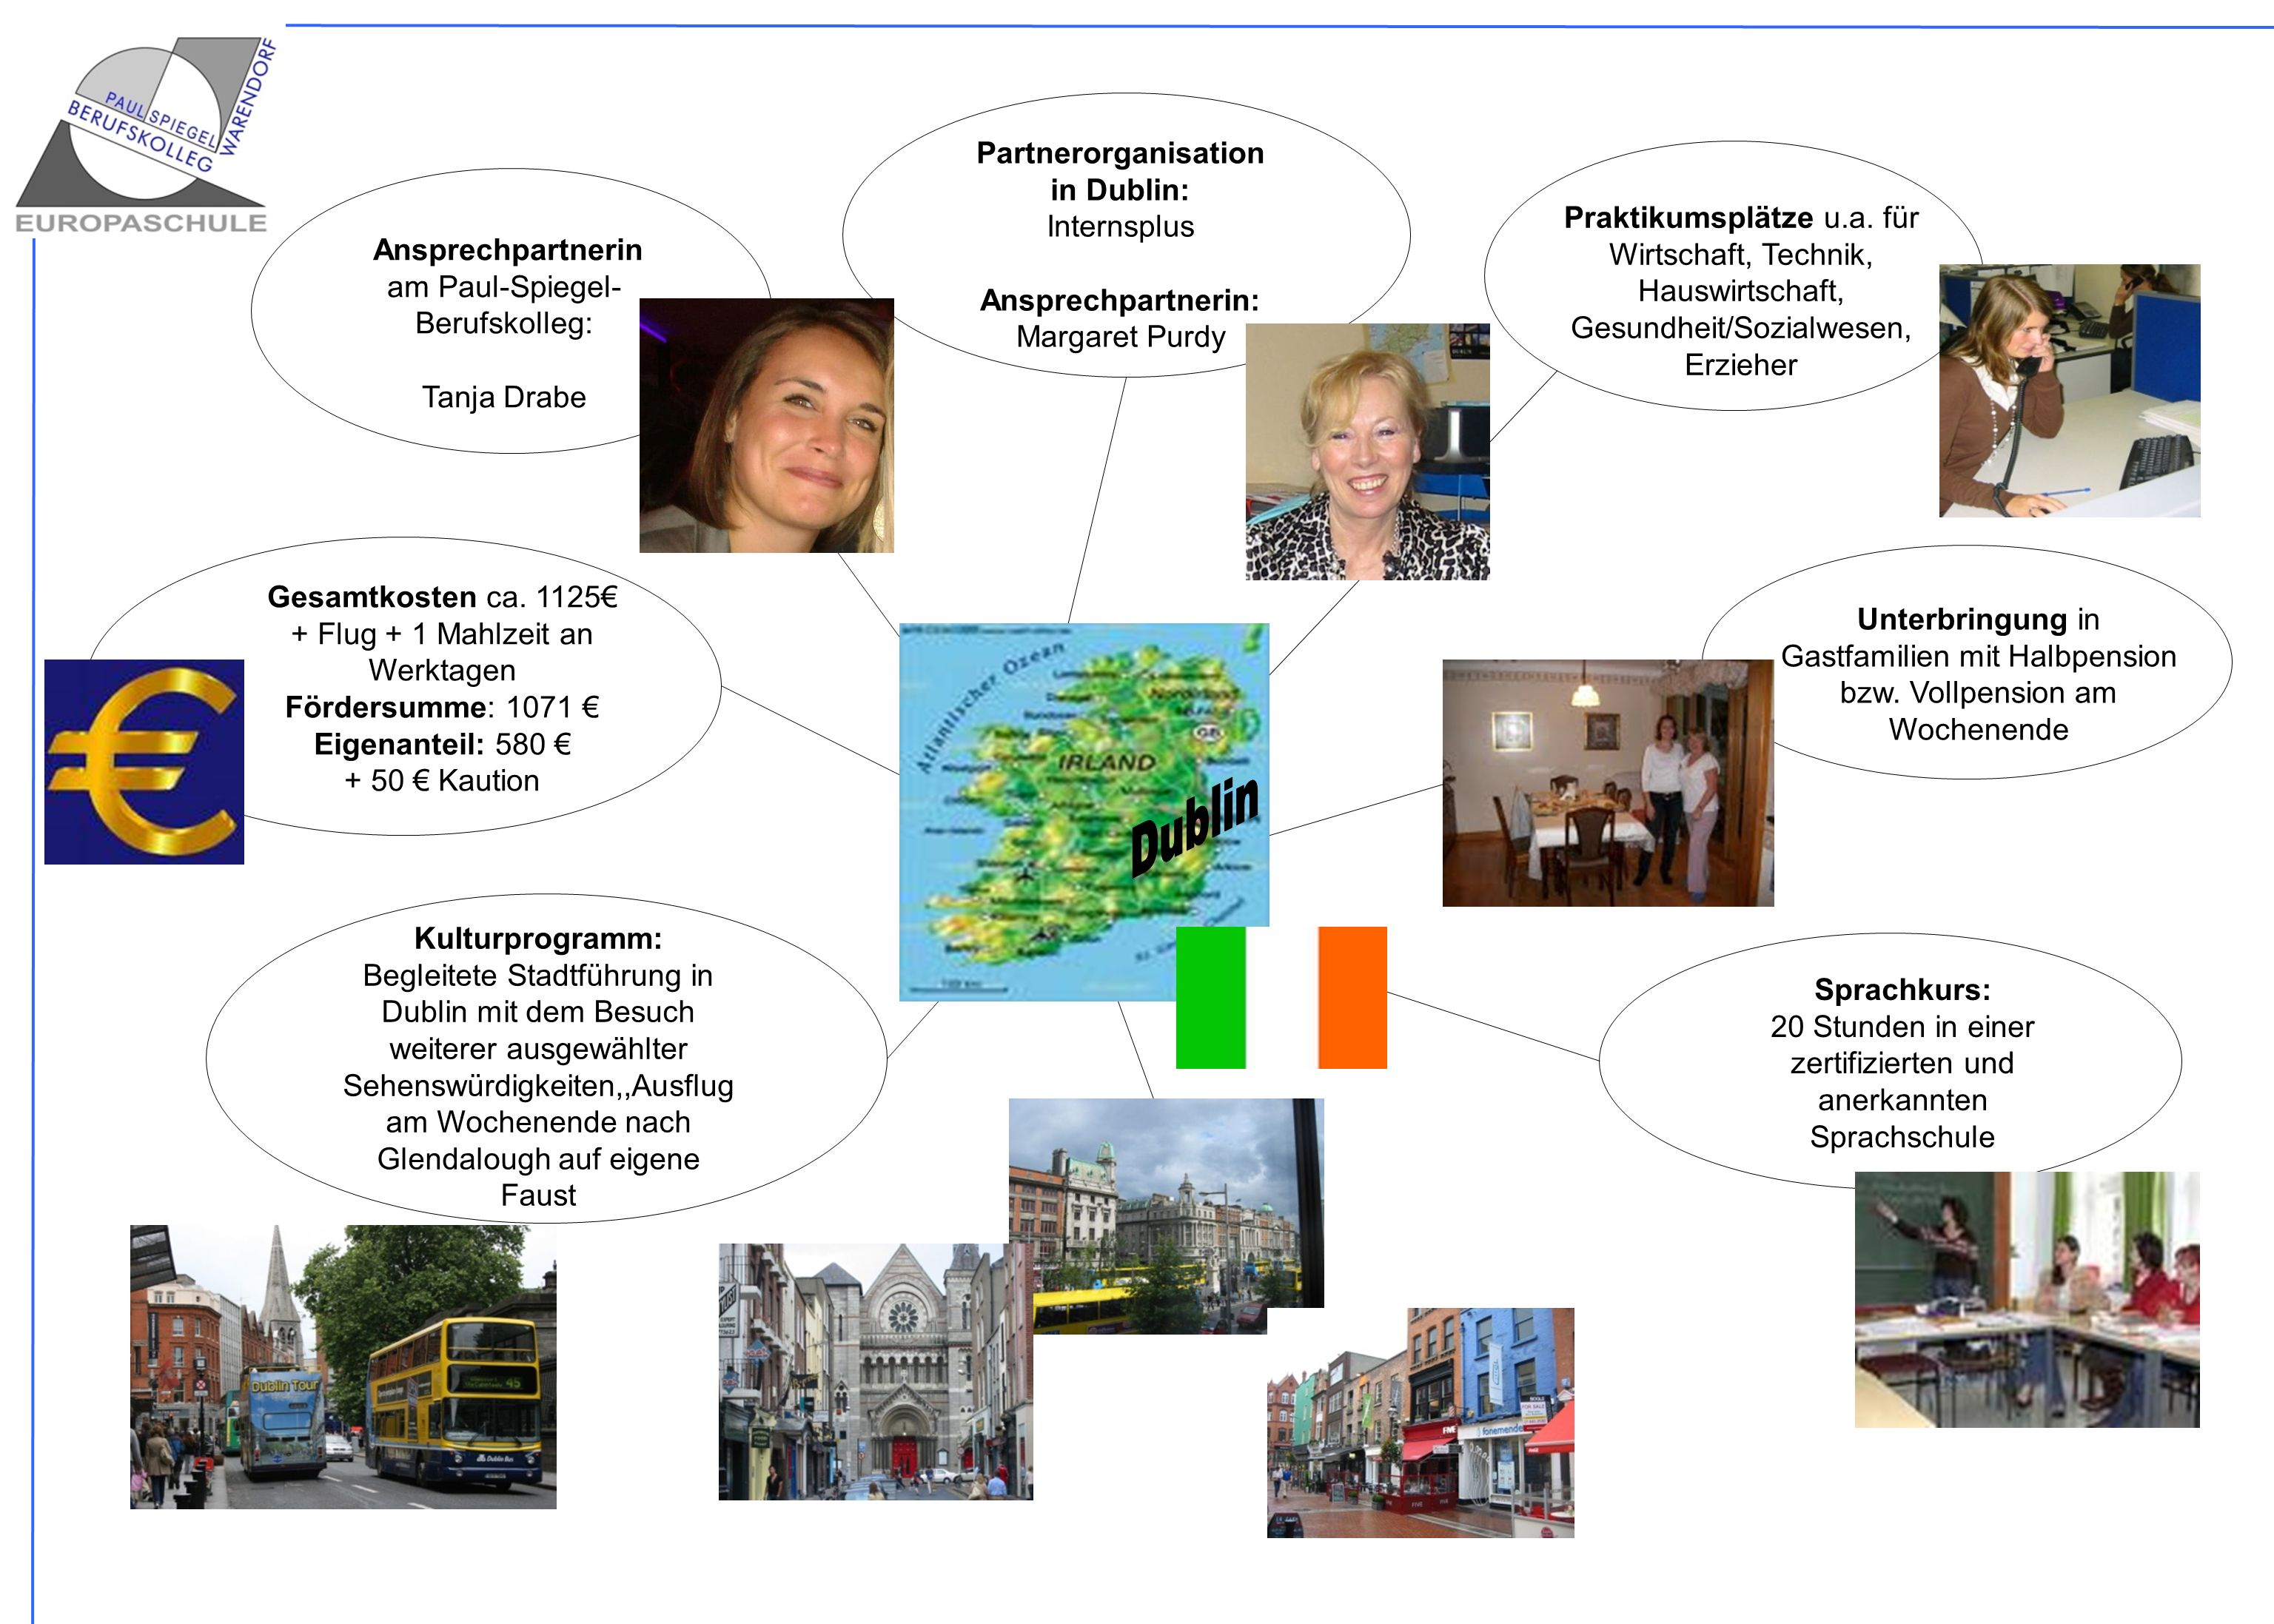 Dublin Partnerorganisation in Dublin: Internsplus